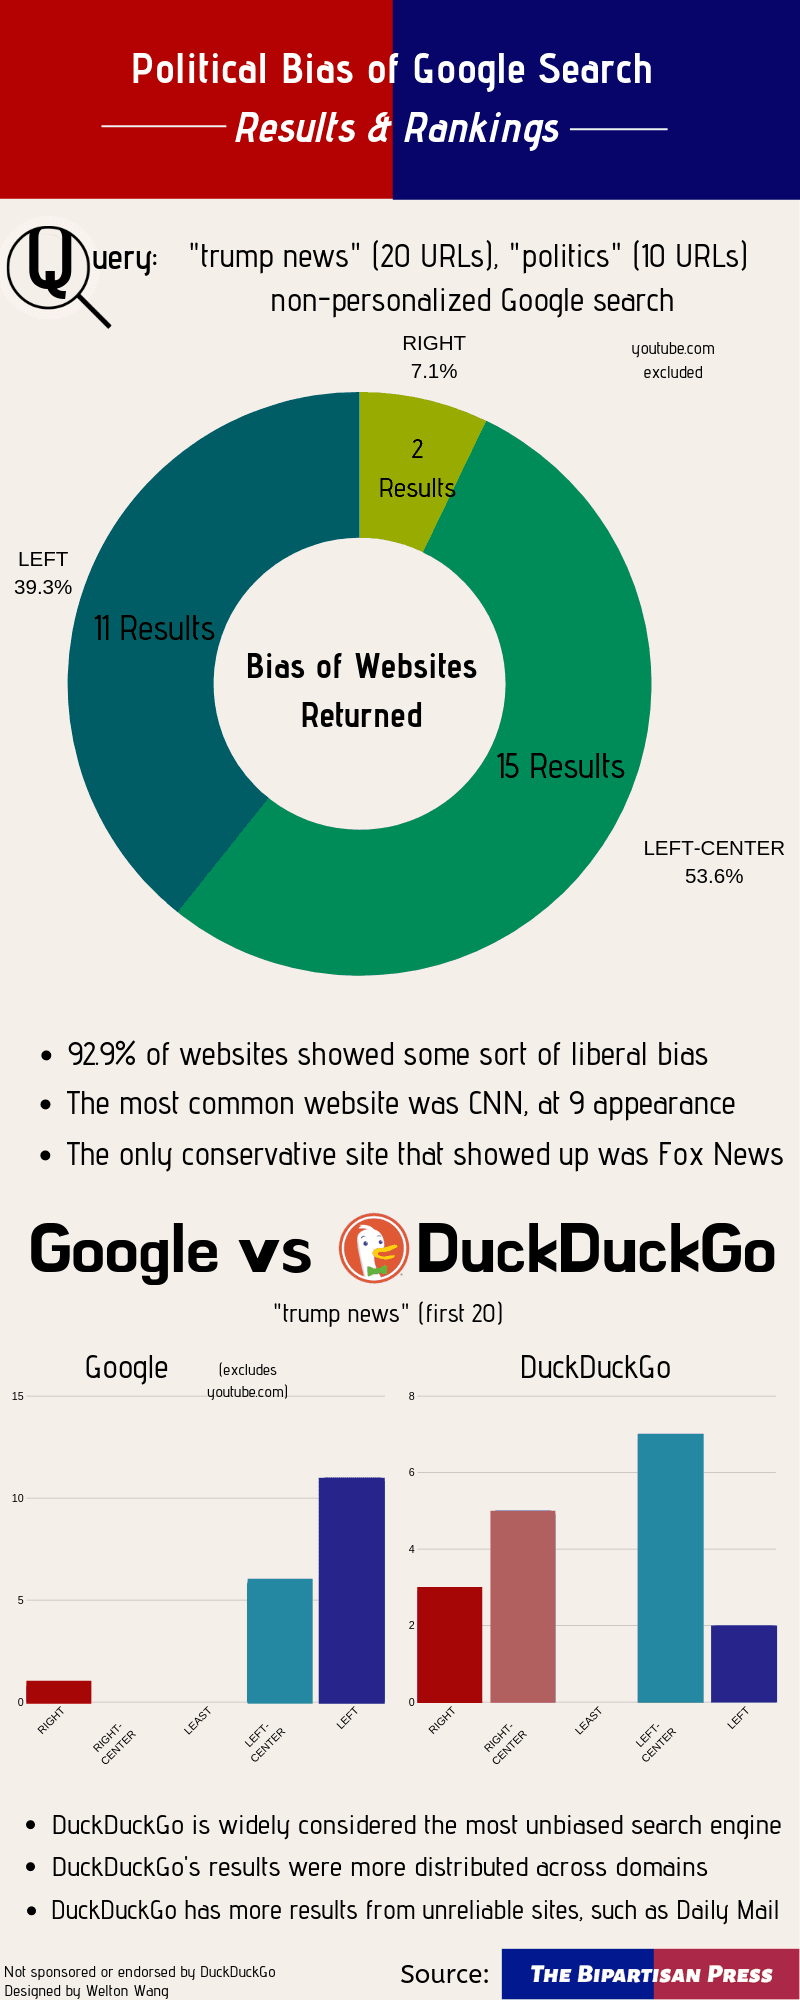 Google's Results Are Biased Towards Liberal Websites